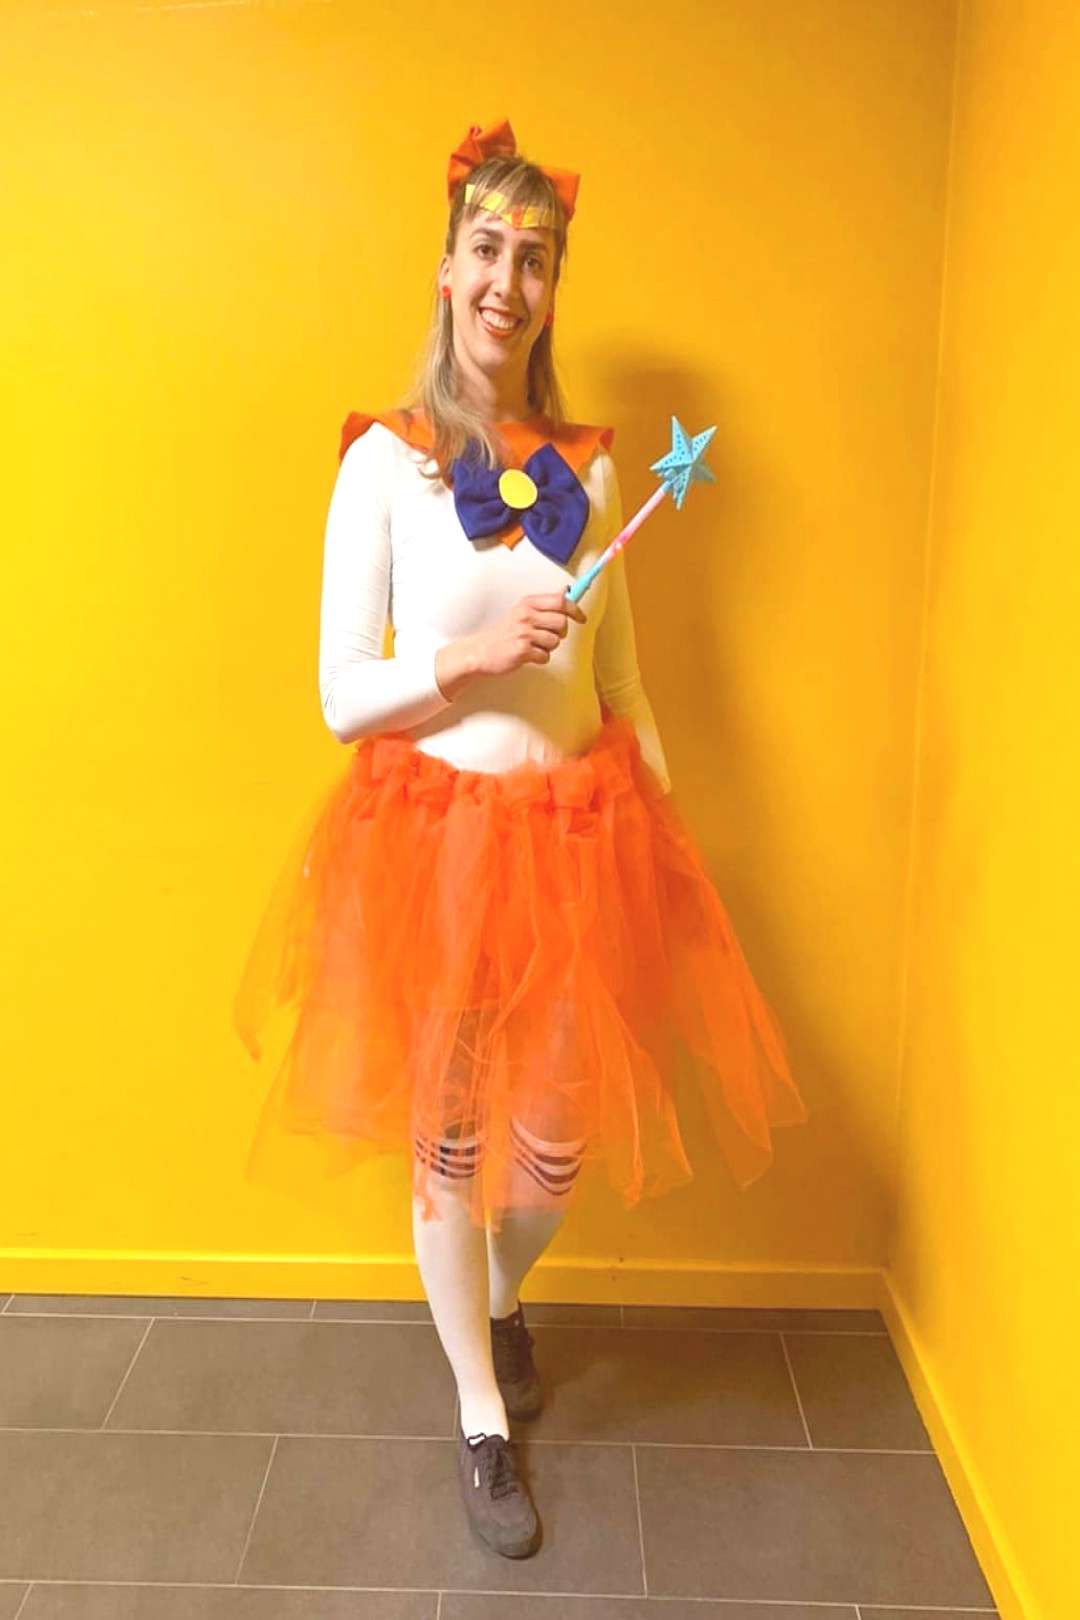 Sailor Venus - In the name of the #fasching#maschgra#karneval#all